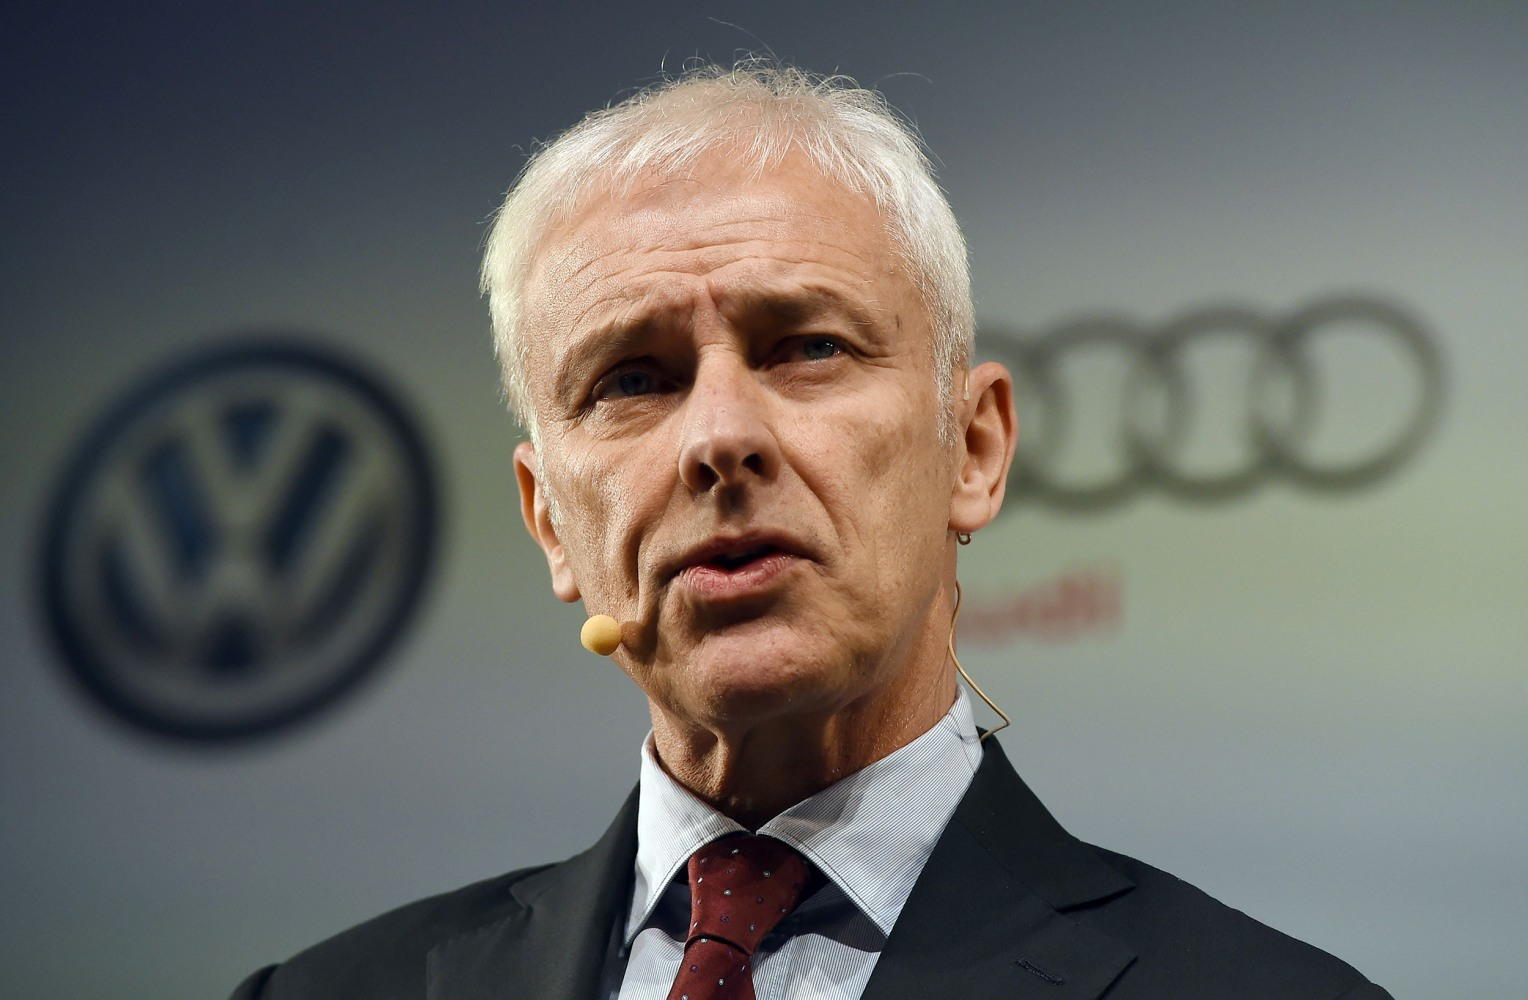 volkswagen ceo meets  top epa official  emissions scandal nbc news